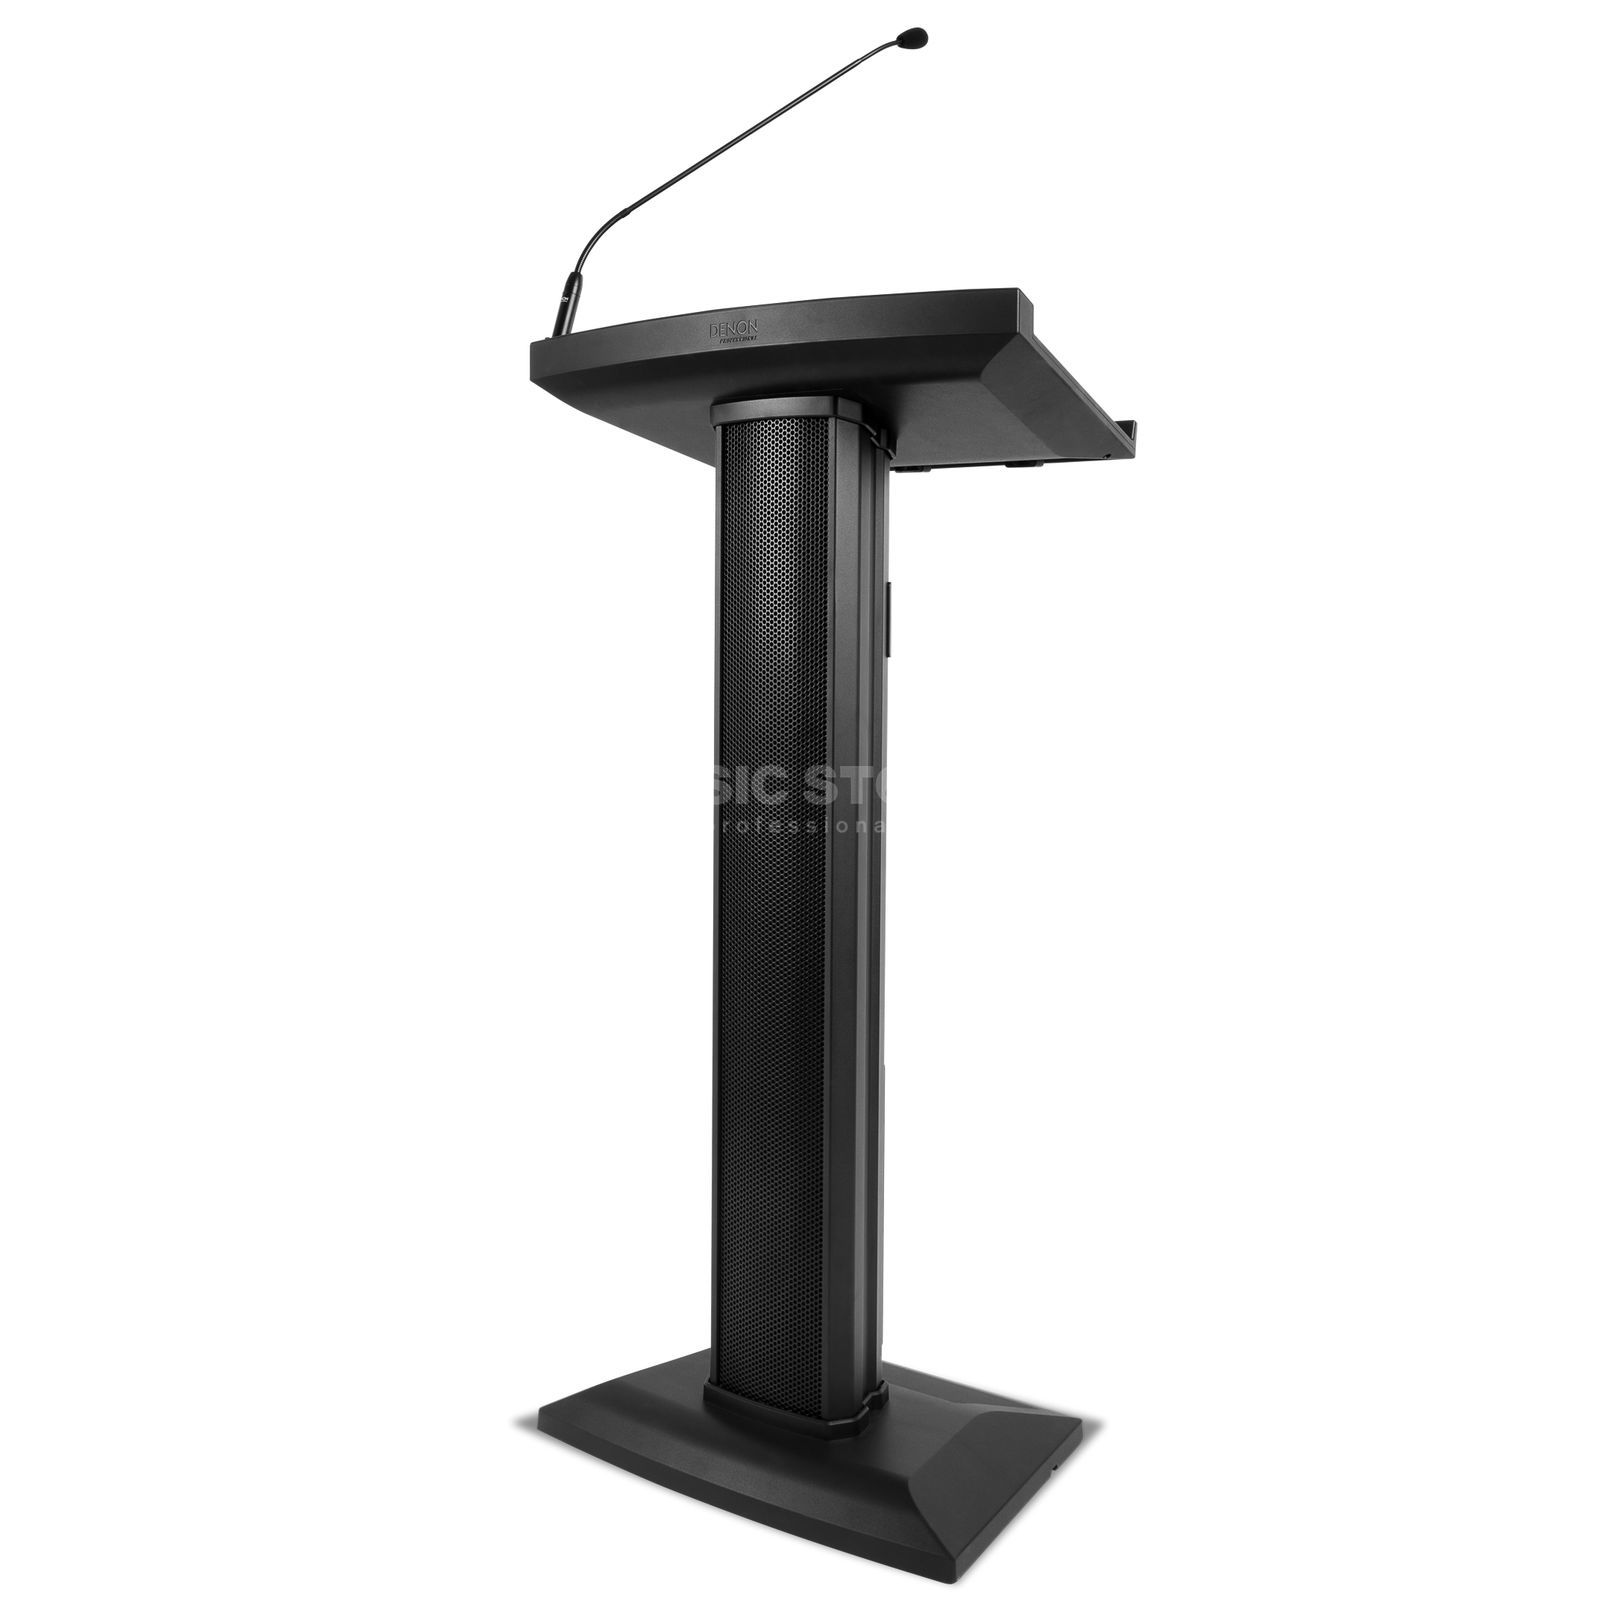 Denon Professional Lectern Active Product Image